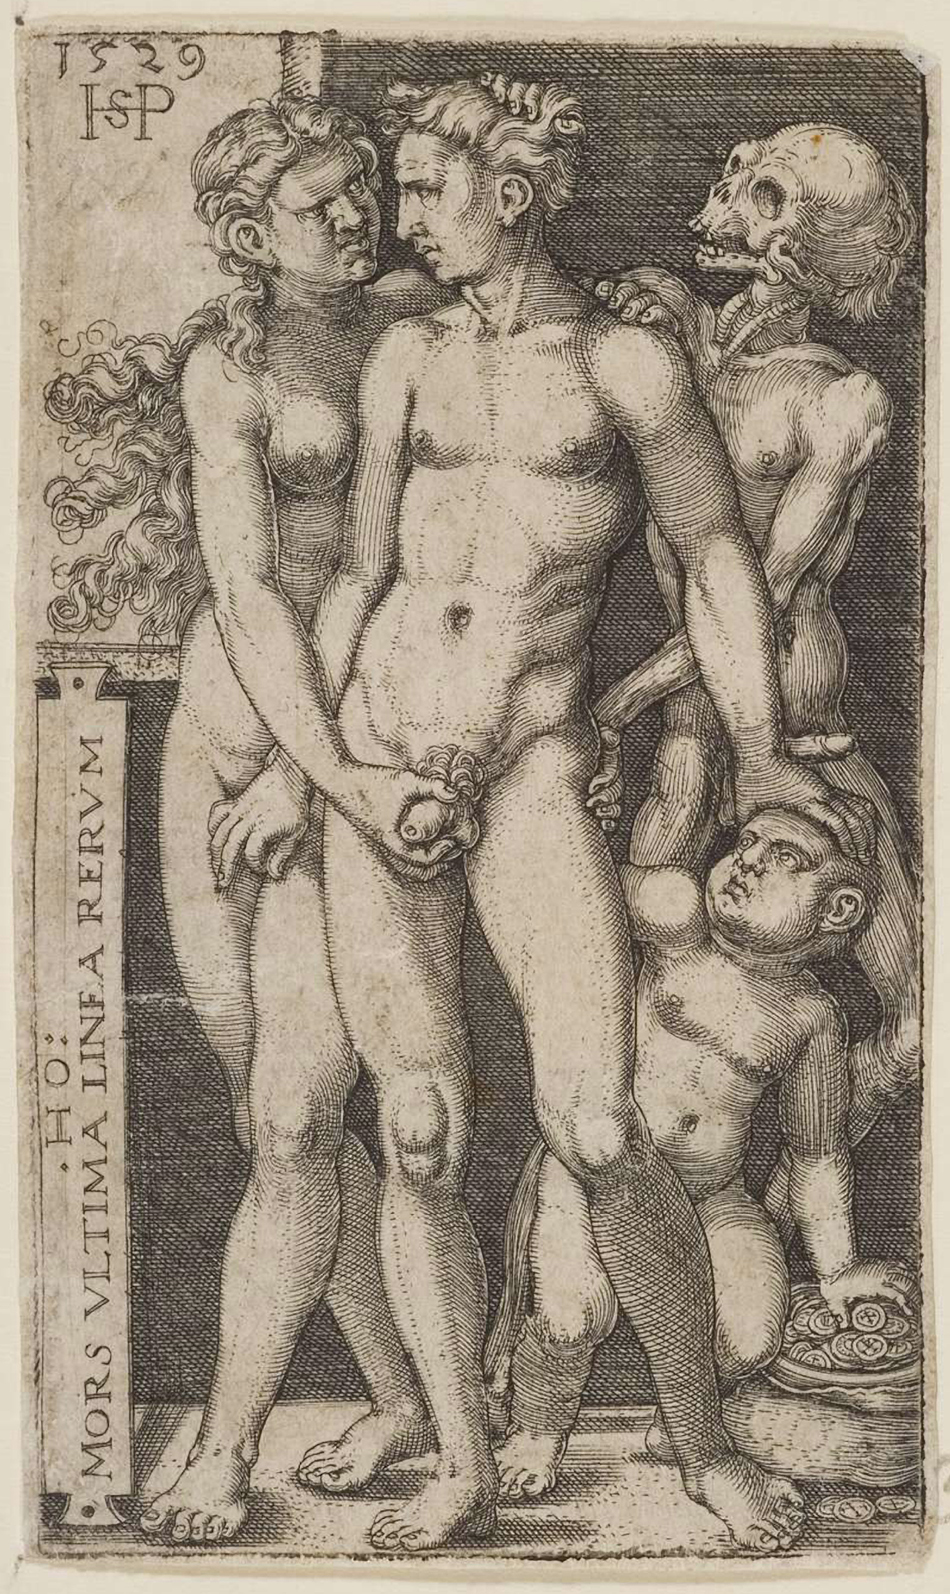 02 Hans Sebald Beham. Death and the Indecent Pair. 1529